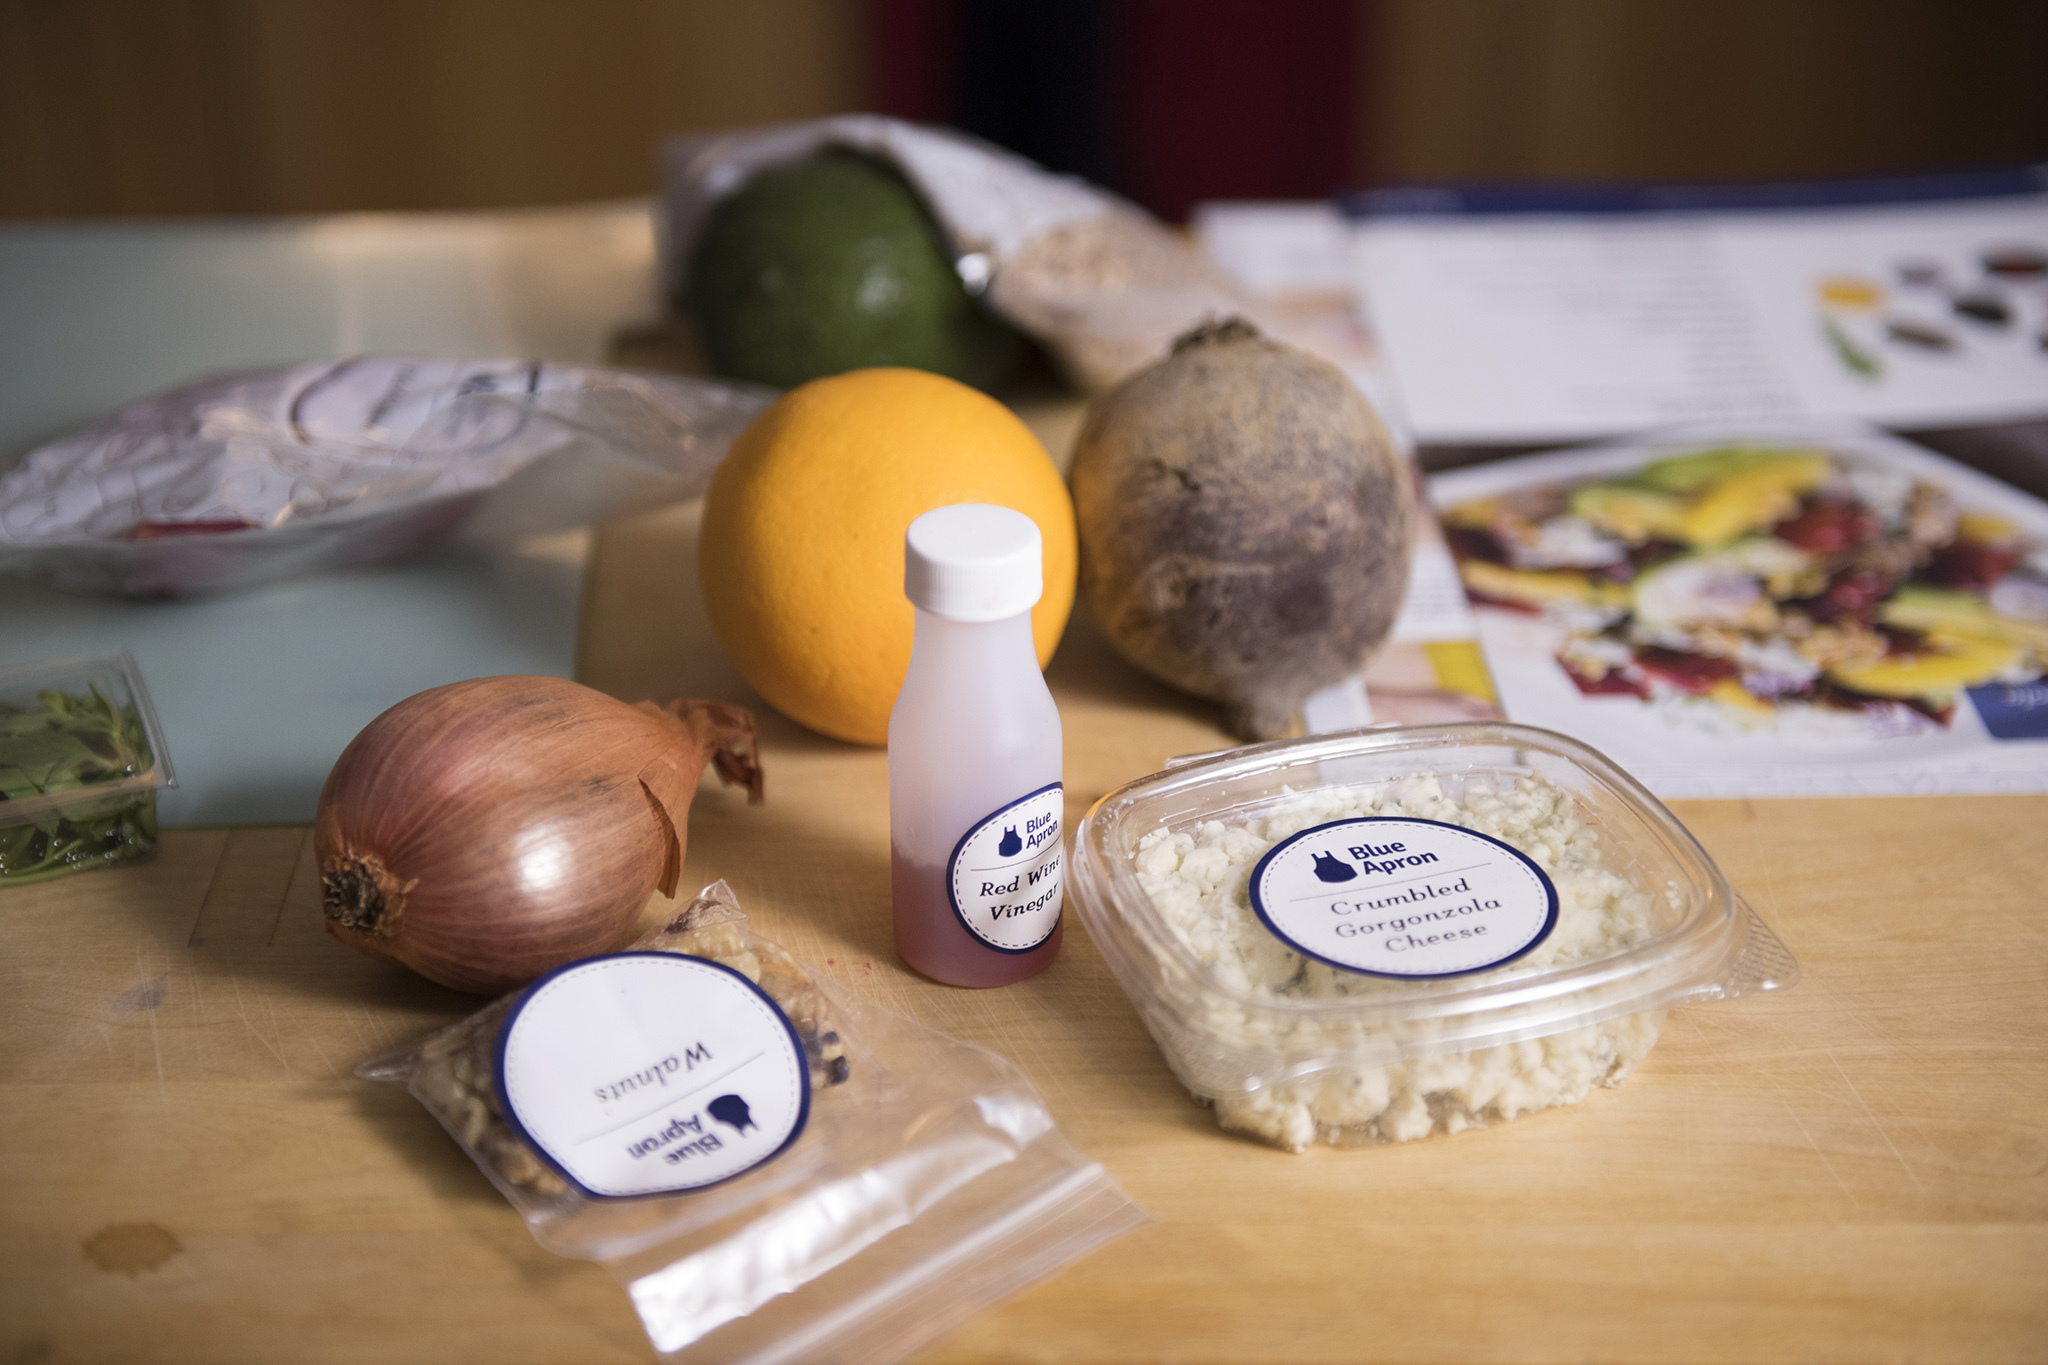 No small feast with Blue Apron